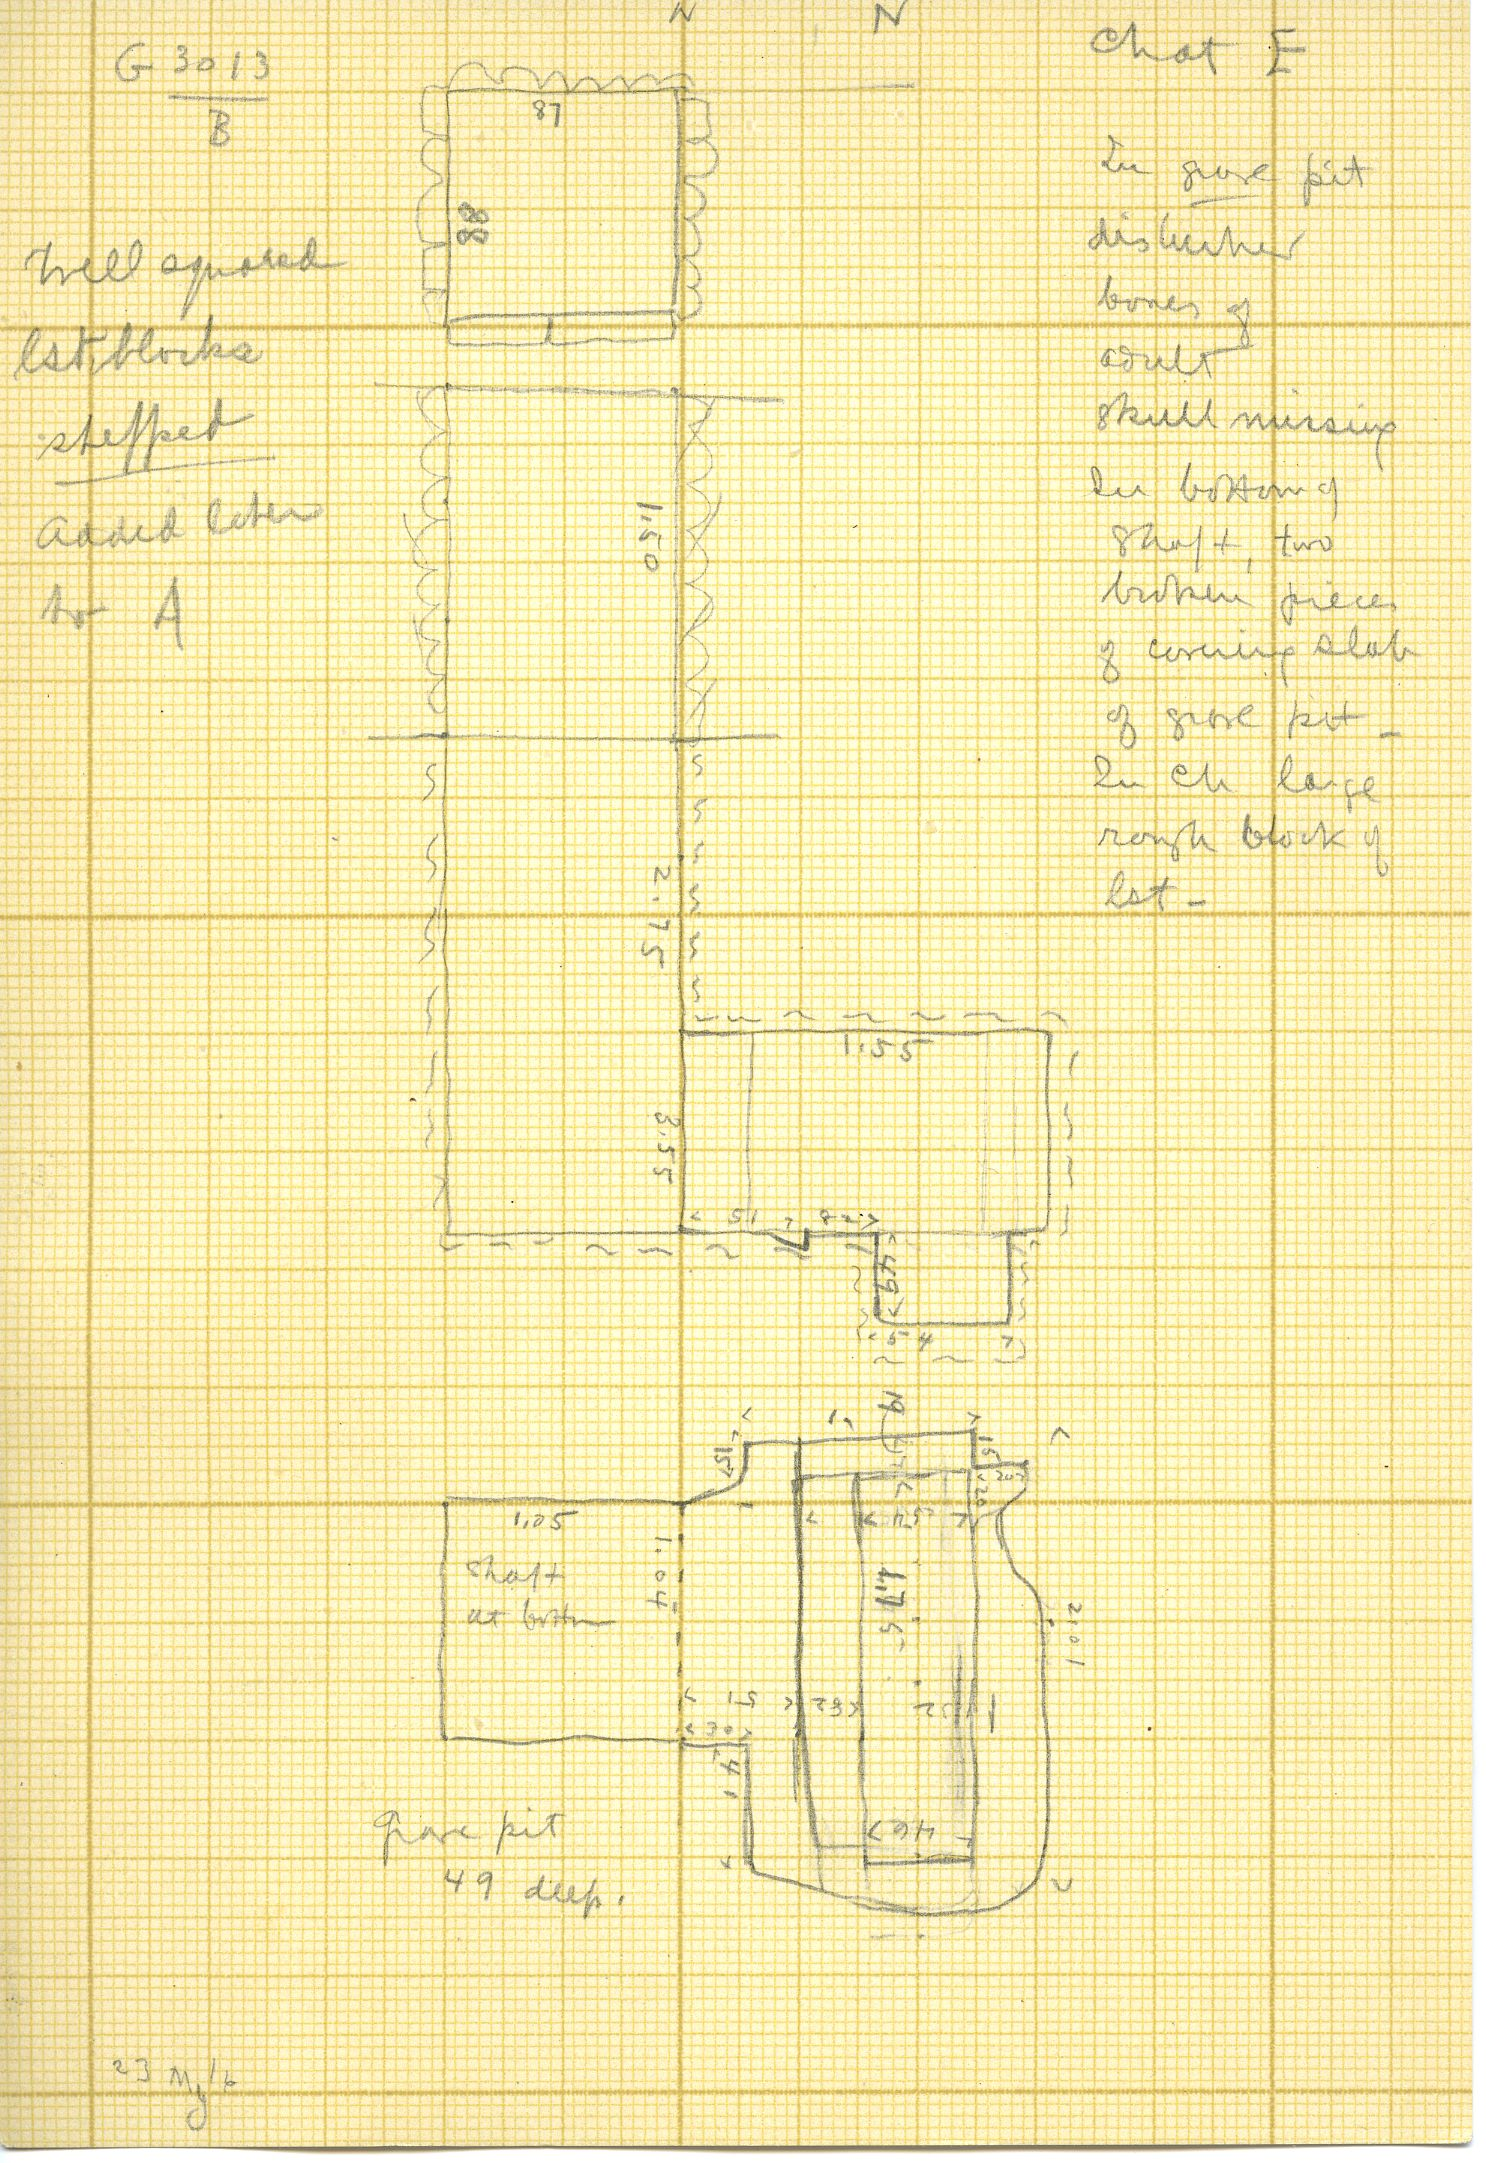 Maps and plans: G 3013, Shaft B